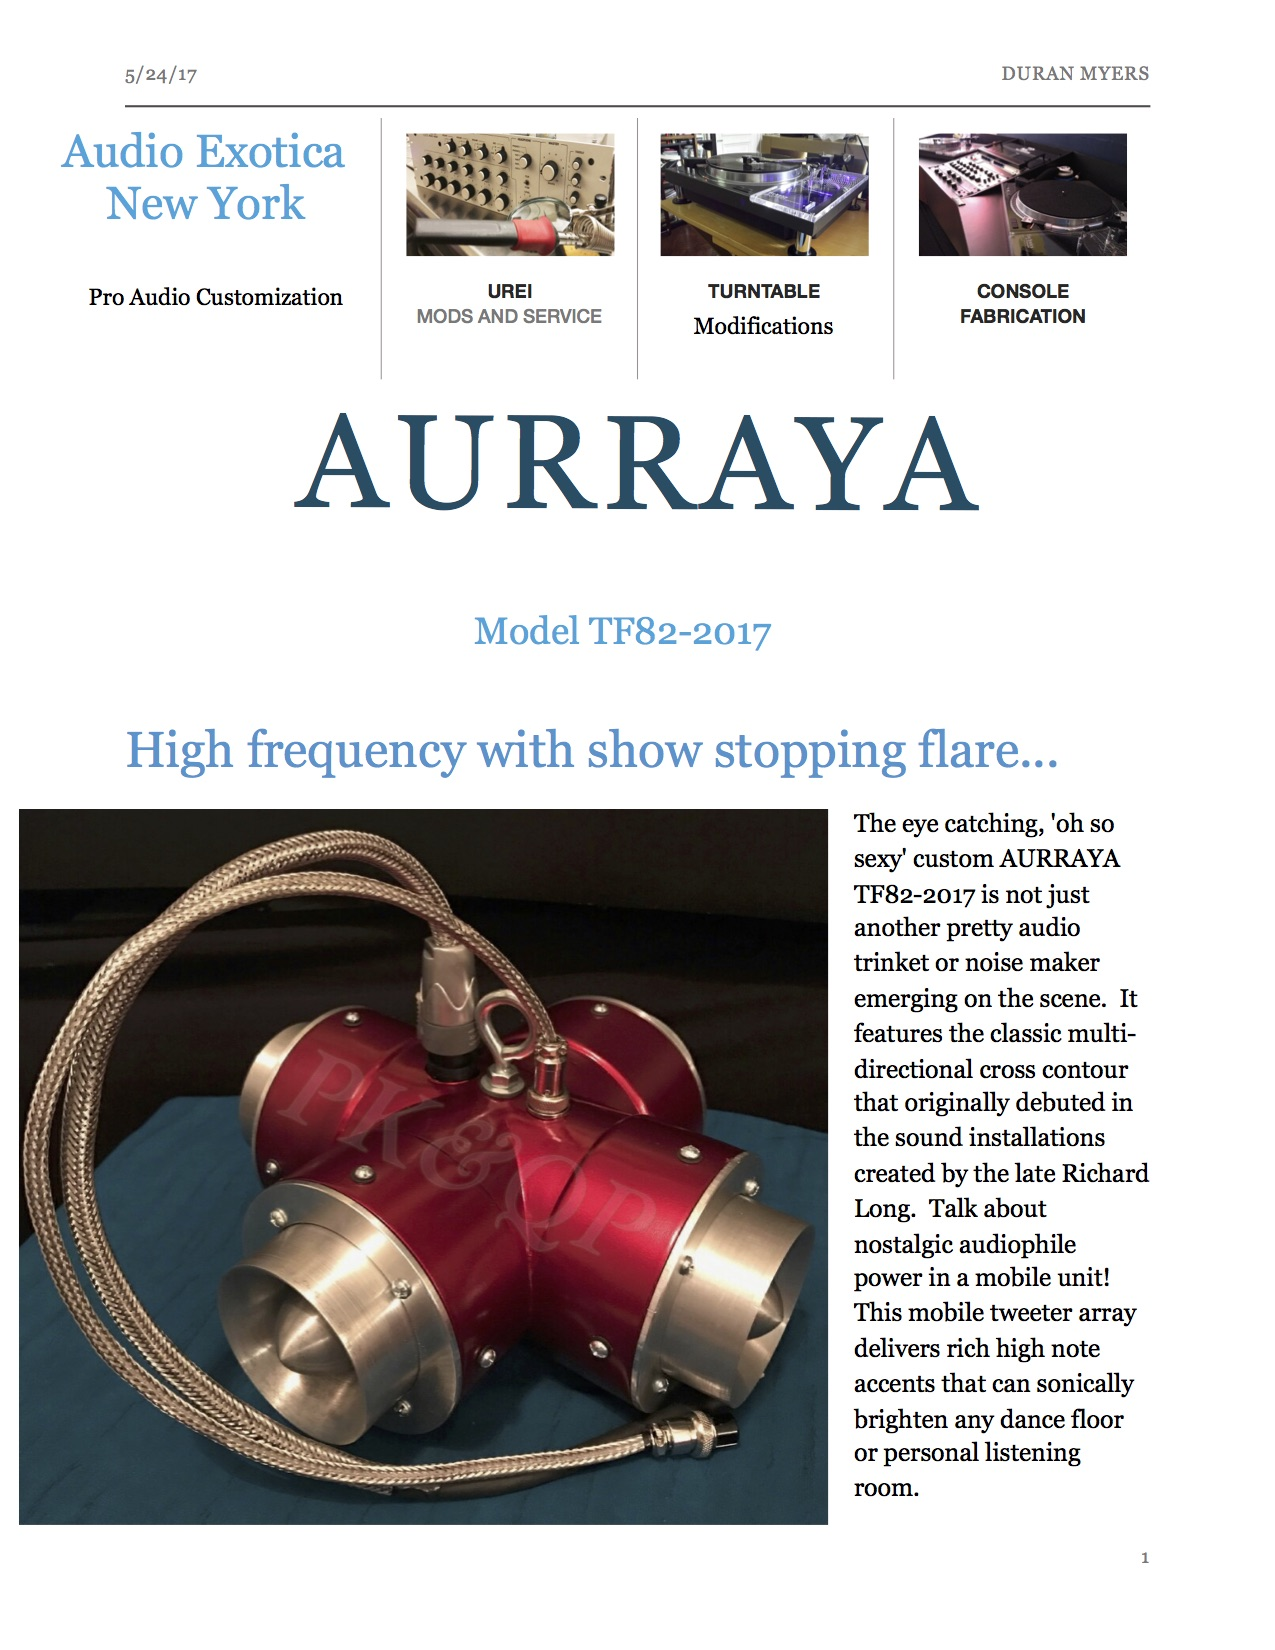 AURRAYA Model TF82-2017